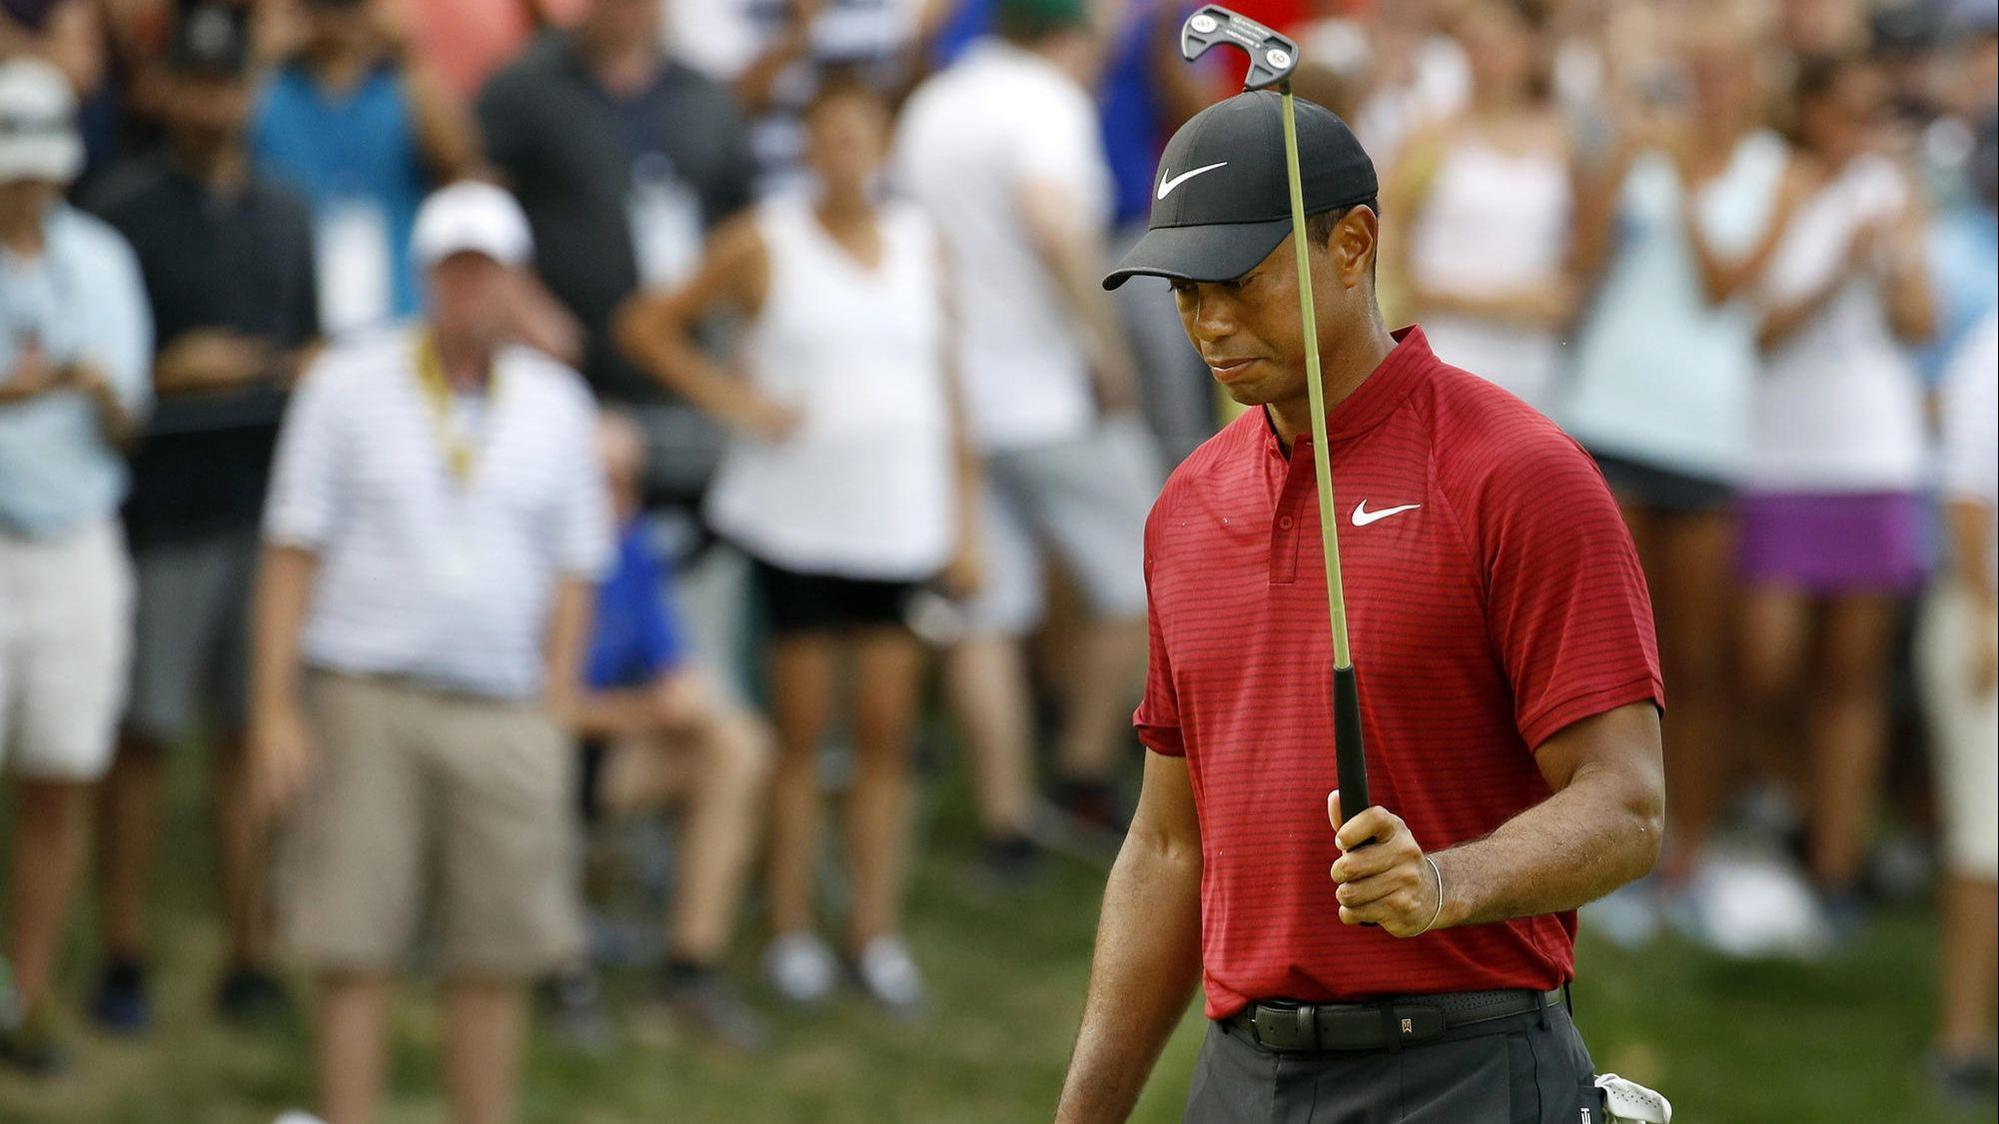 After second-place finish,Tiger Woods' future looks much clearer